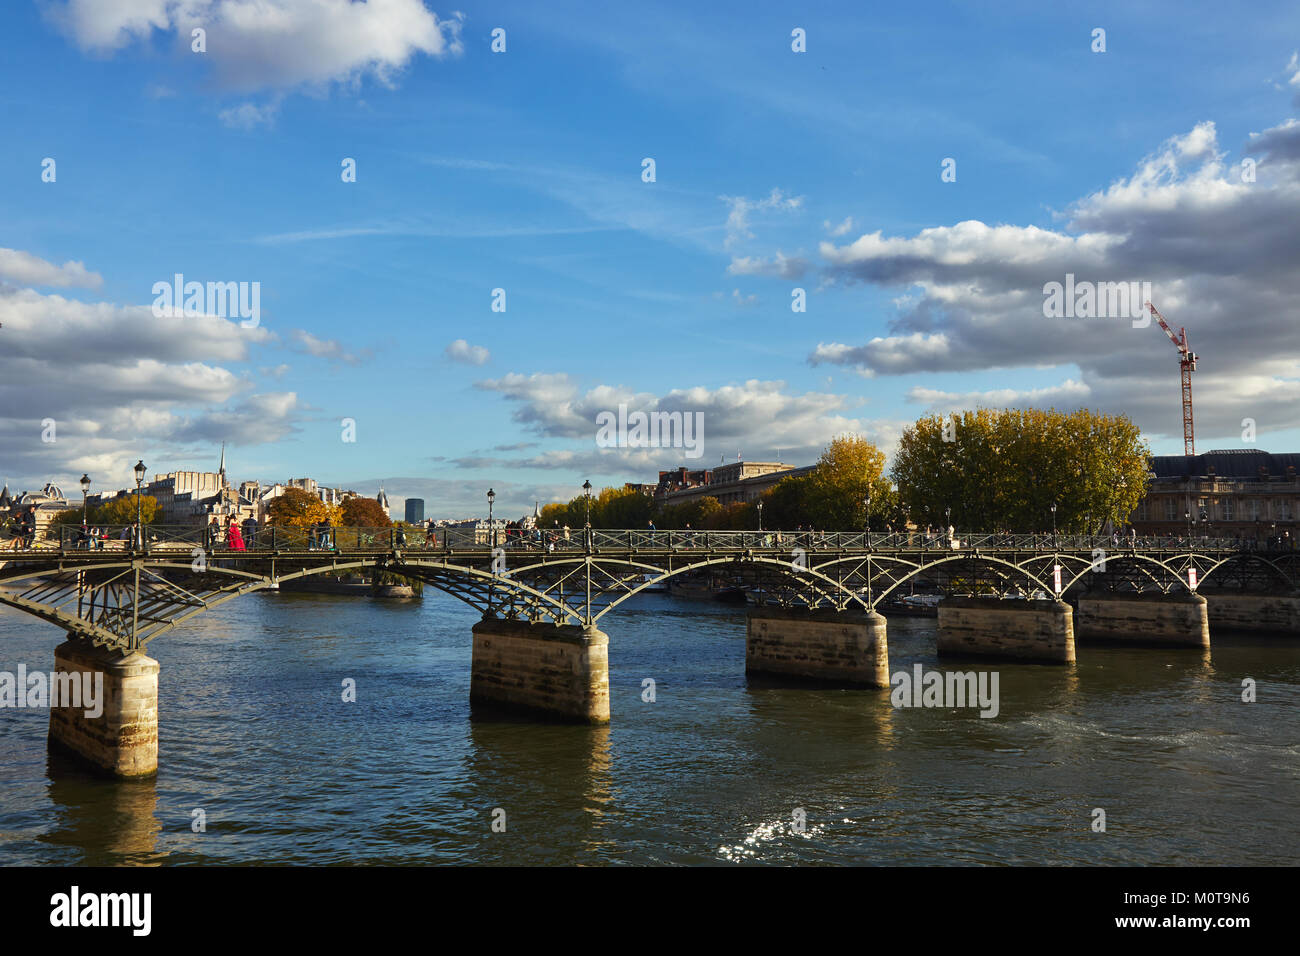 Paris,France - October 3 2017 : Ponts the Arts in Paris over the river Seine and people walking along the bridge - Stock Image